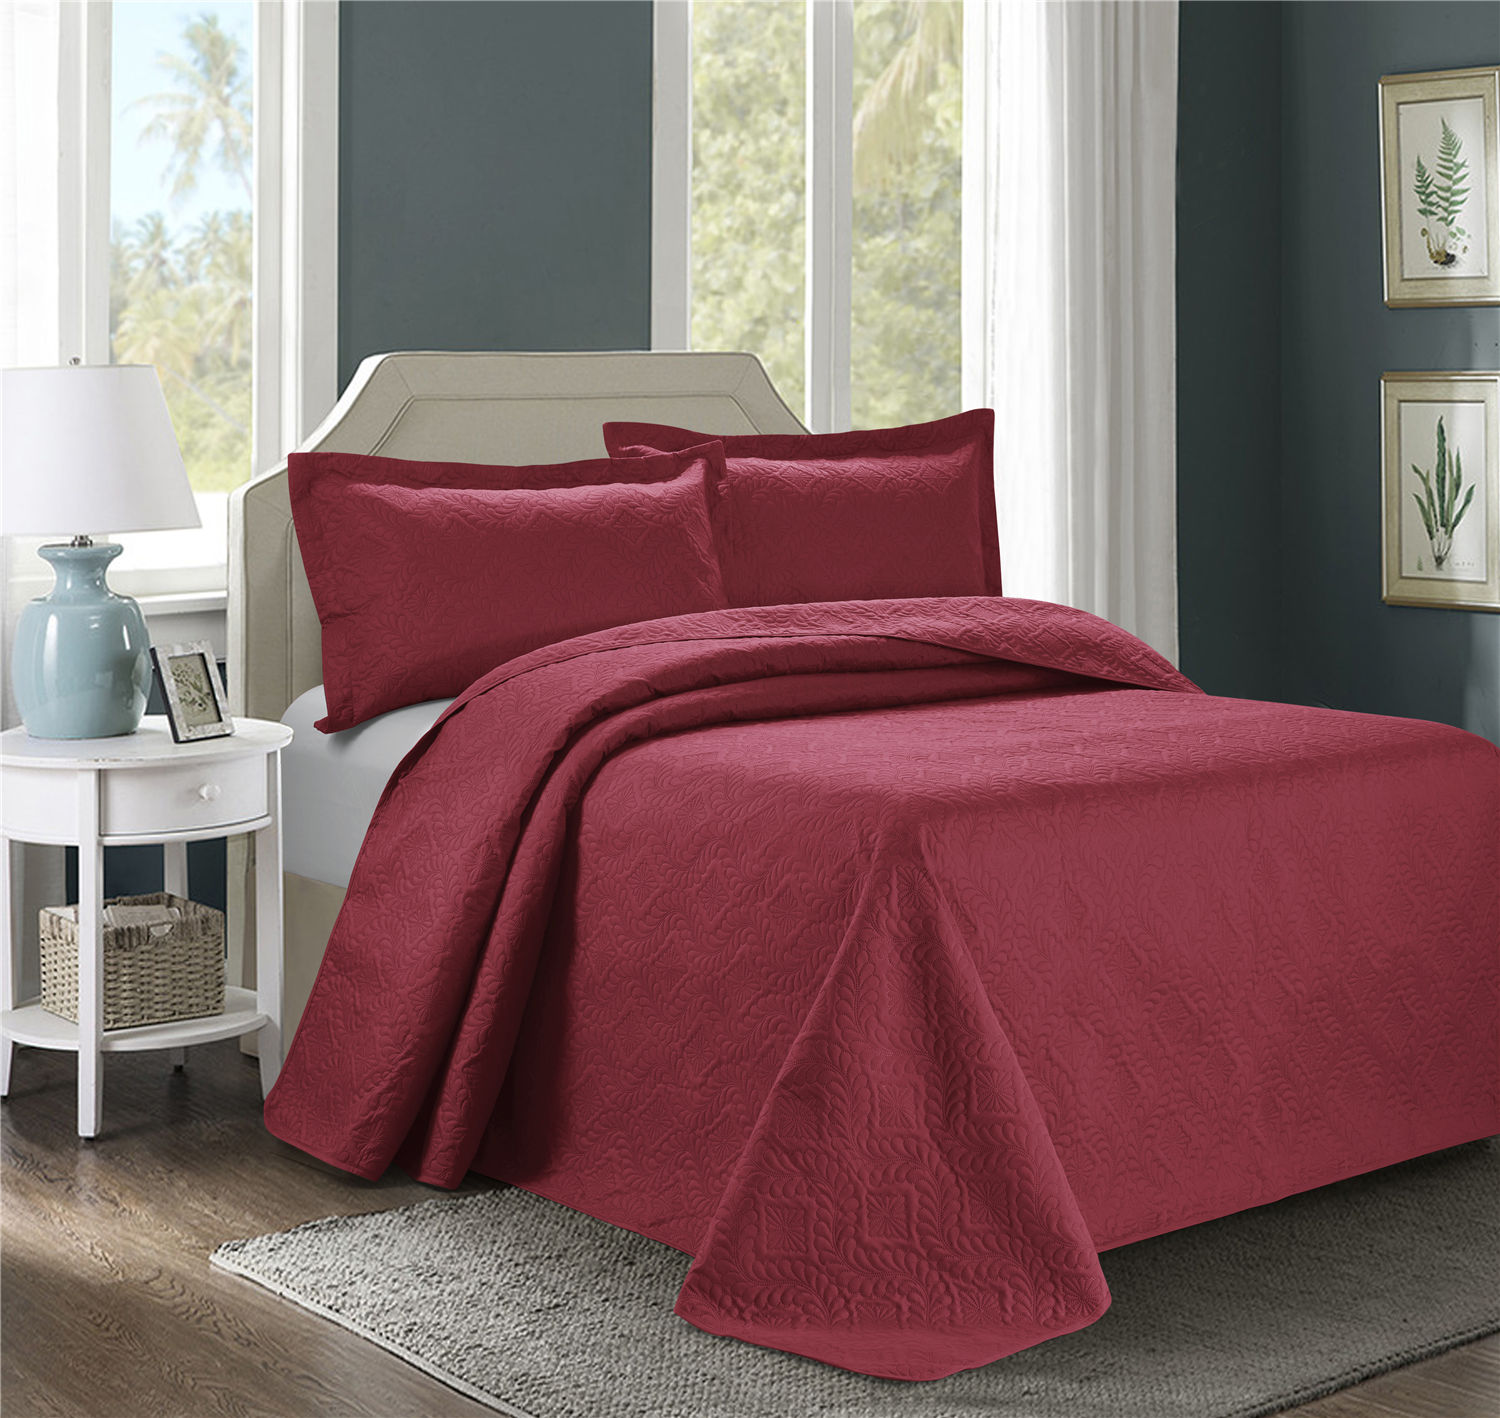 3 Piece Oversize Bedspread Burgundy Color -ESTANCIA Wisteria Ultrasonic Embossed Bedspread Set with Two Shams - Oversized Coverlet Queen 100x106 inches- Hypoallergenic,Fade Resistant,Wrinkle Resistant